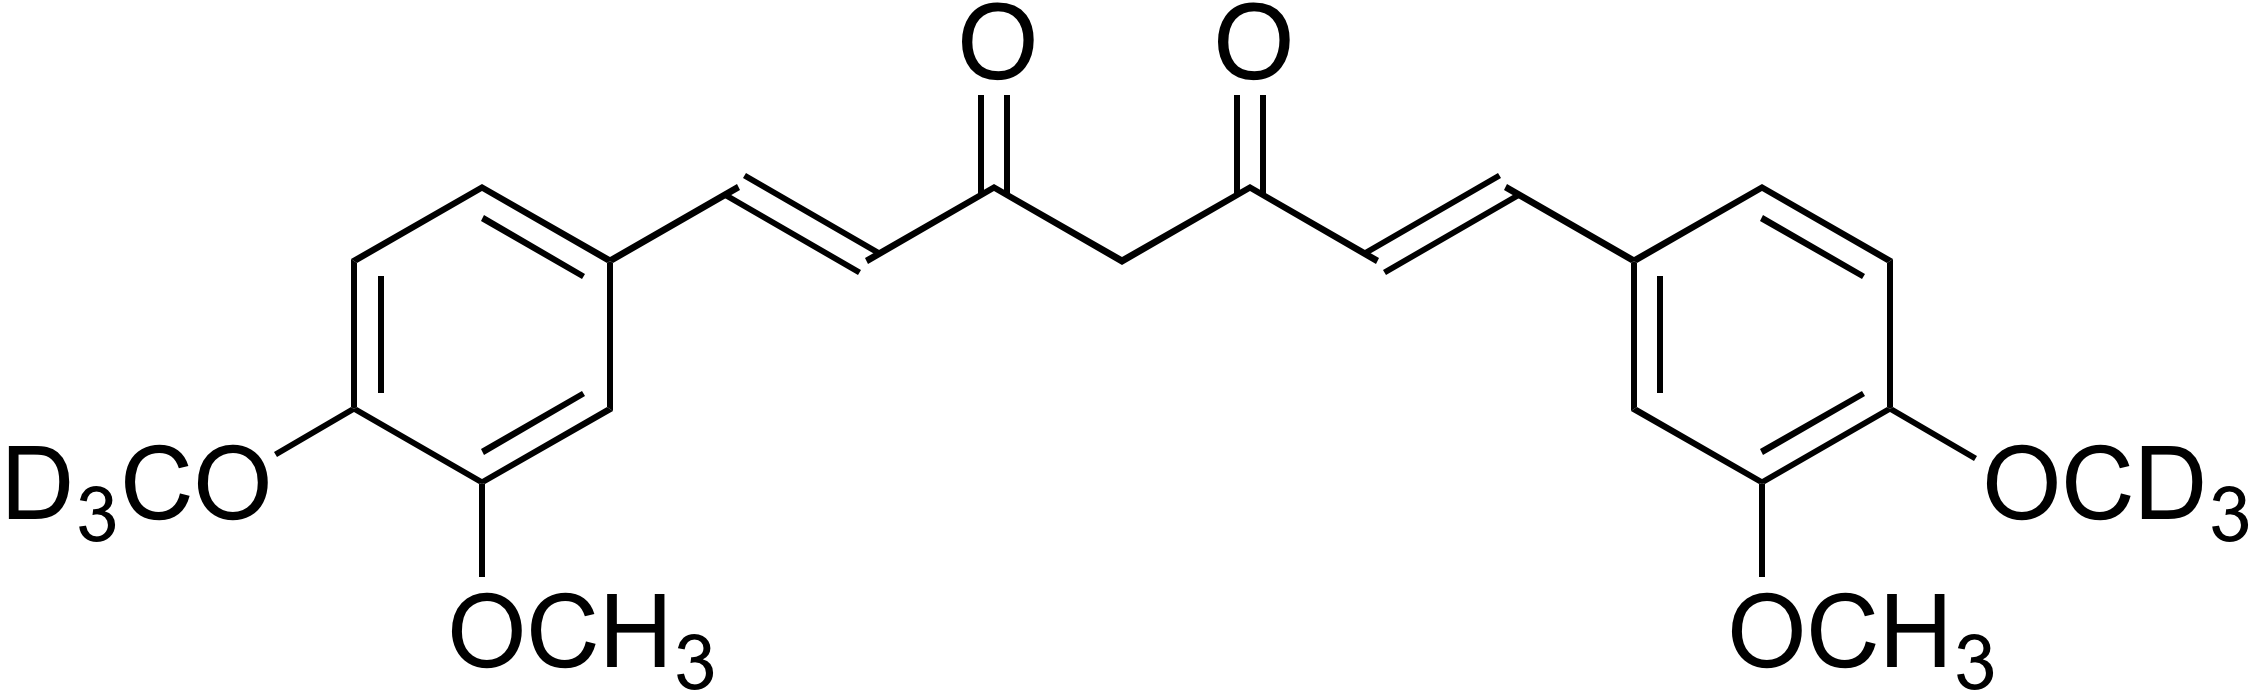 Dimethoxycurcumin-d<sub>6</sub>